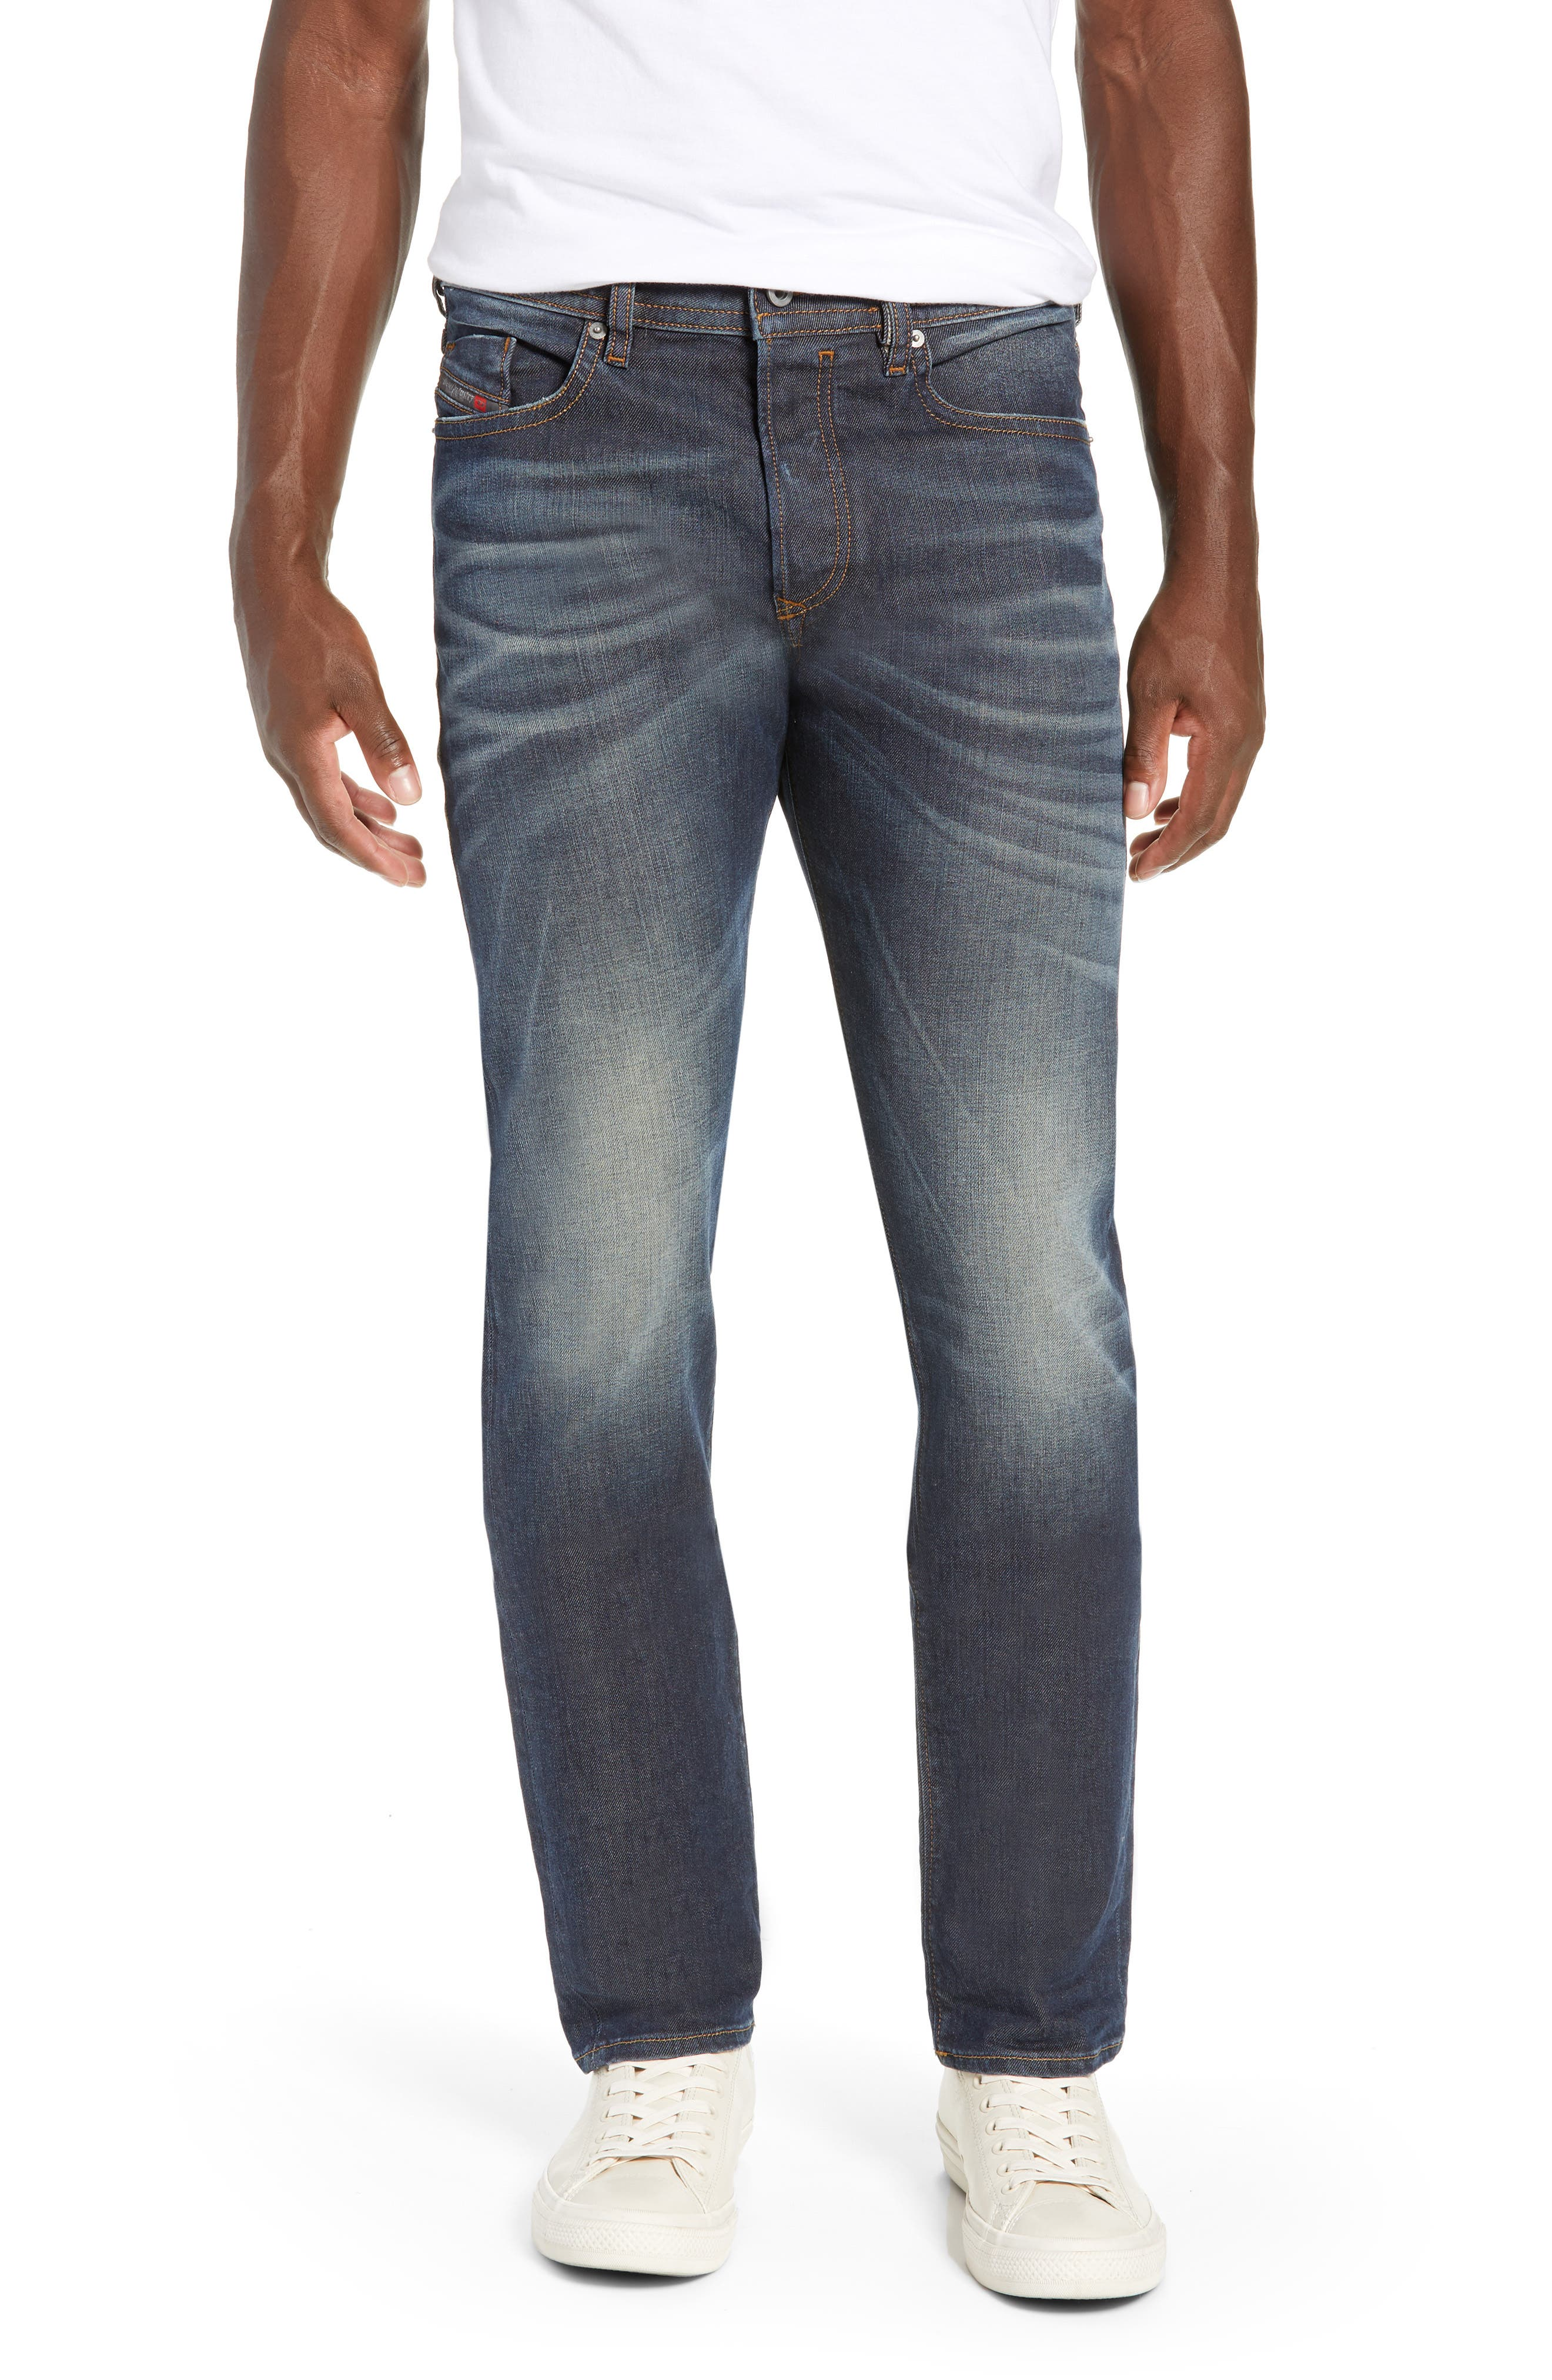 Buster Slim Straight Leg Jeans,                         Main,                         color, 084ZU